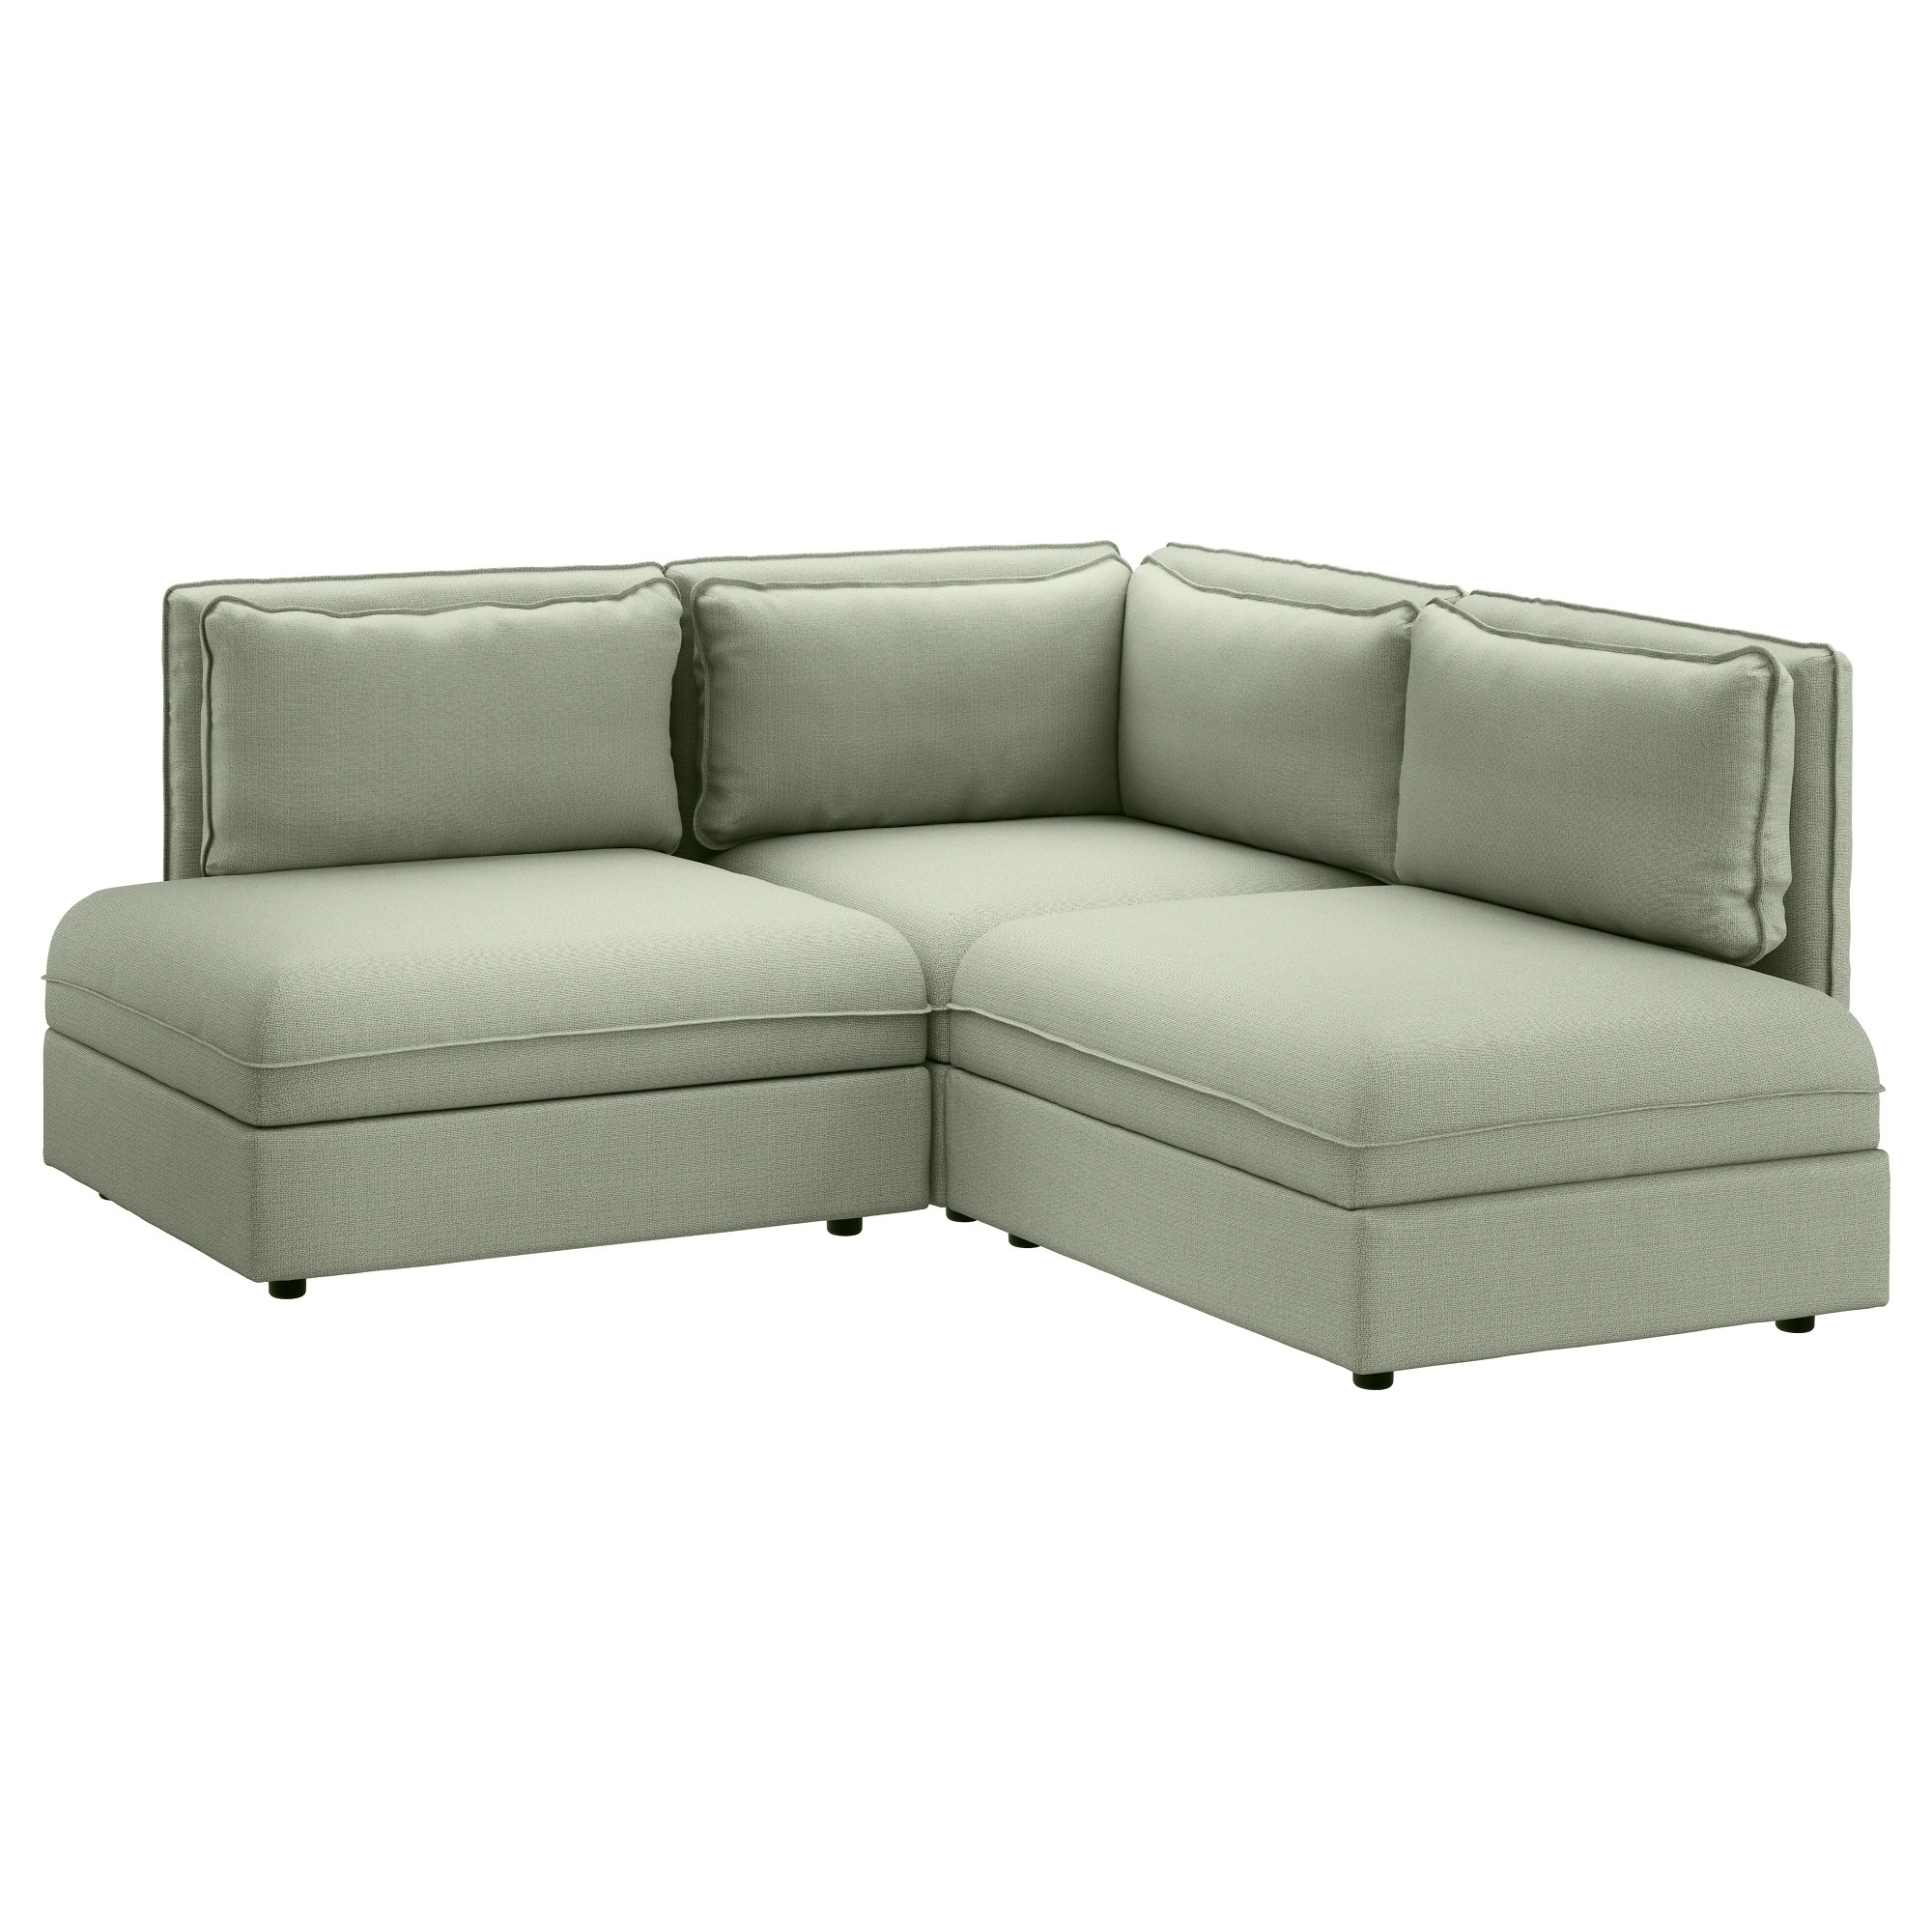 Luxury Sectional Sofas Ikea 94 Sofas And Couches Ideas With In Popular Sectional Sofas At Ikea (View 8 of 20)